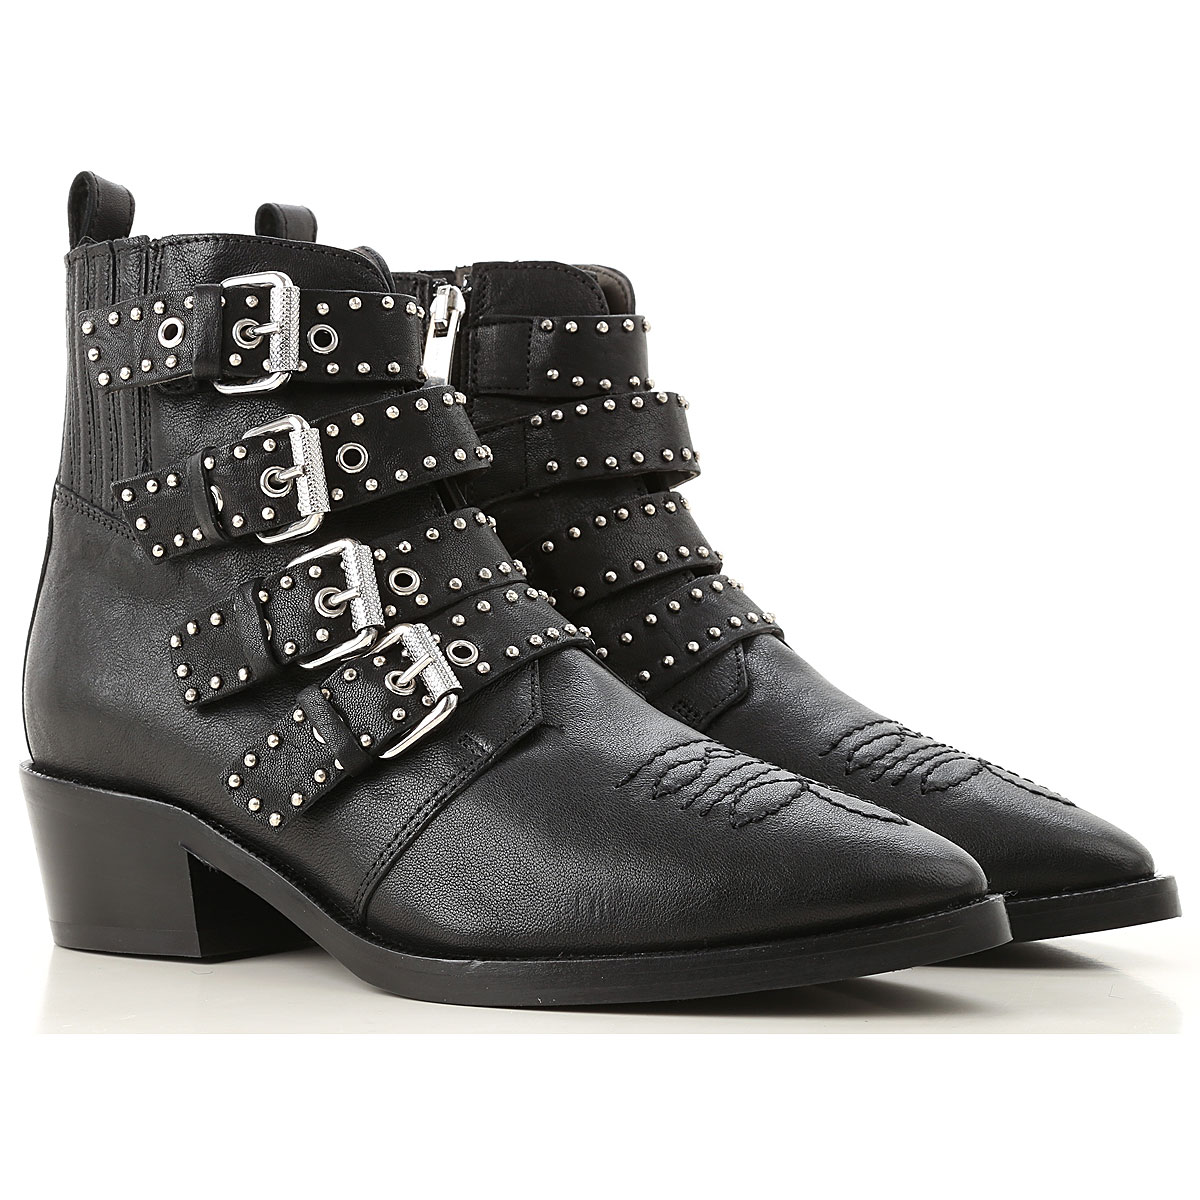 Image of Janet & Janet Boots for Women, Booties, Black, Leather, 2017, 10 11 5.5 6.5 8 8.5 9 9.5